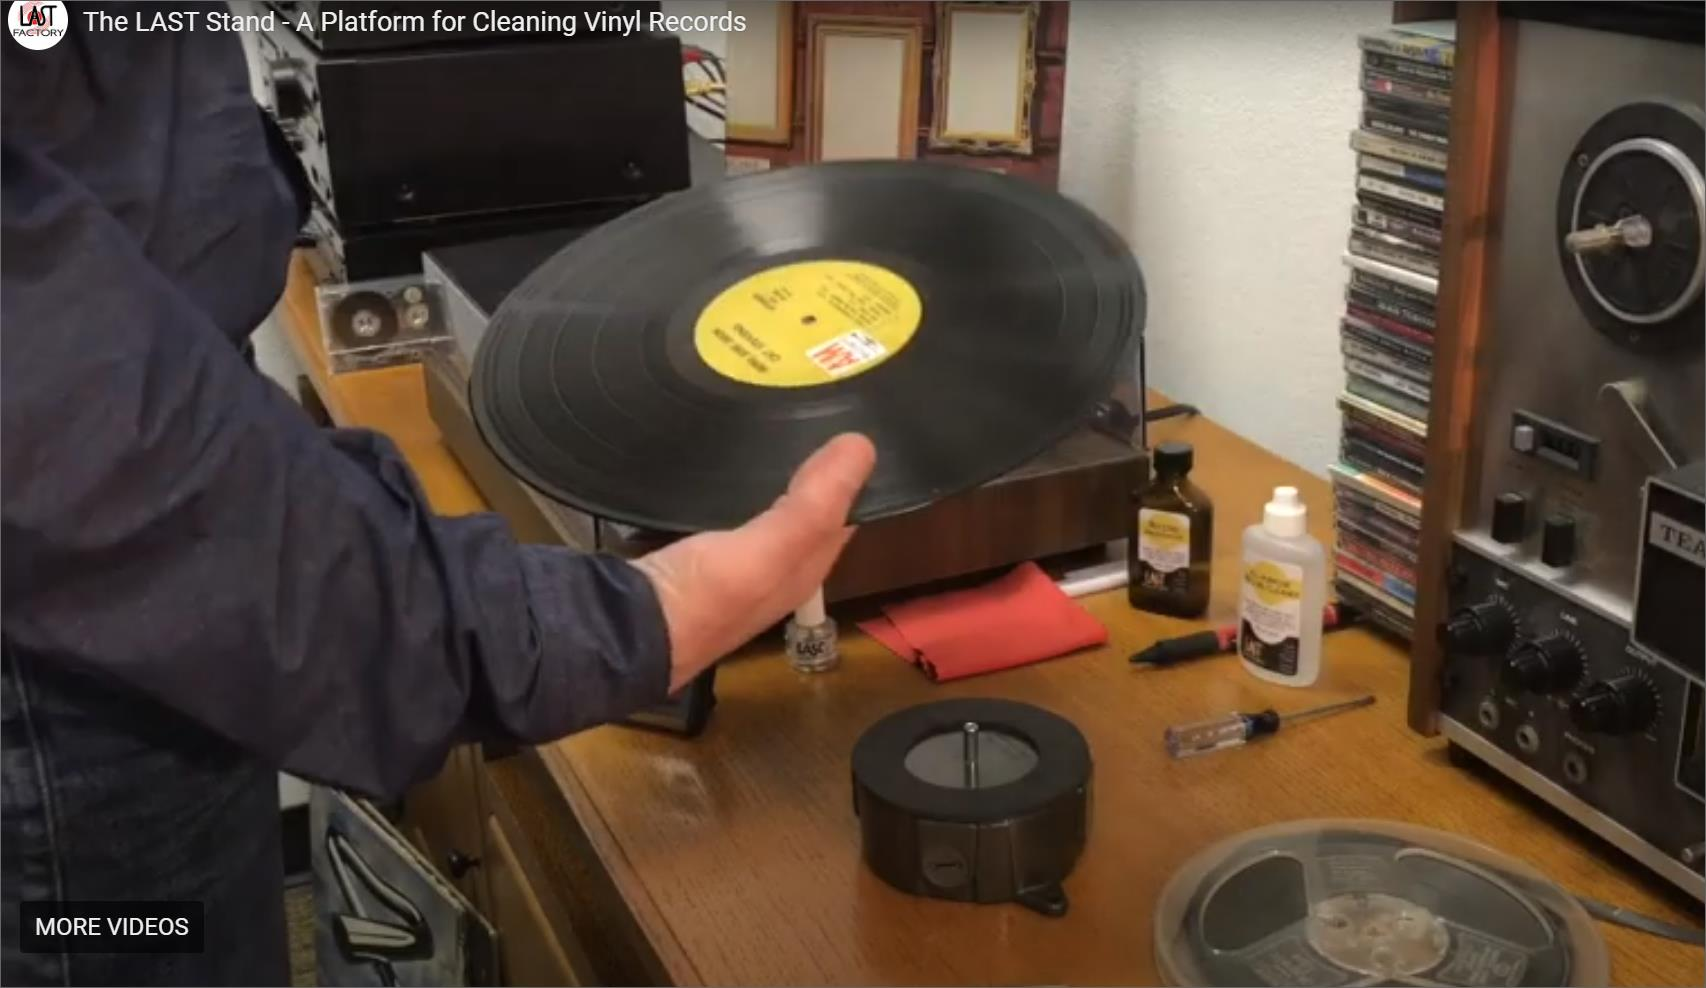 The LAST Stand - A device to secure your record during cleaning